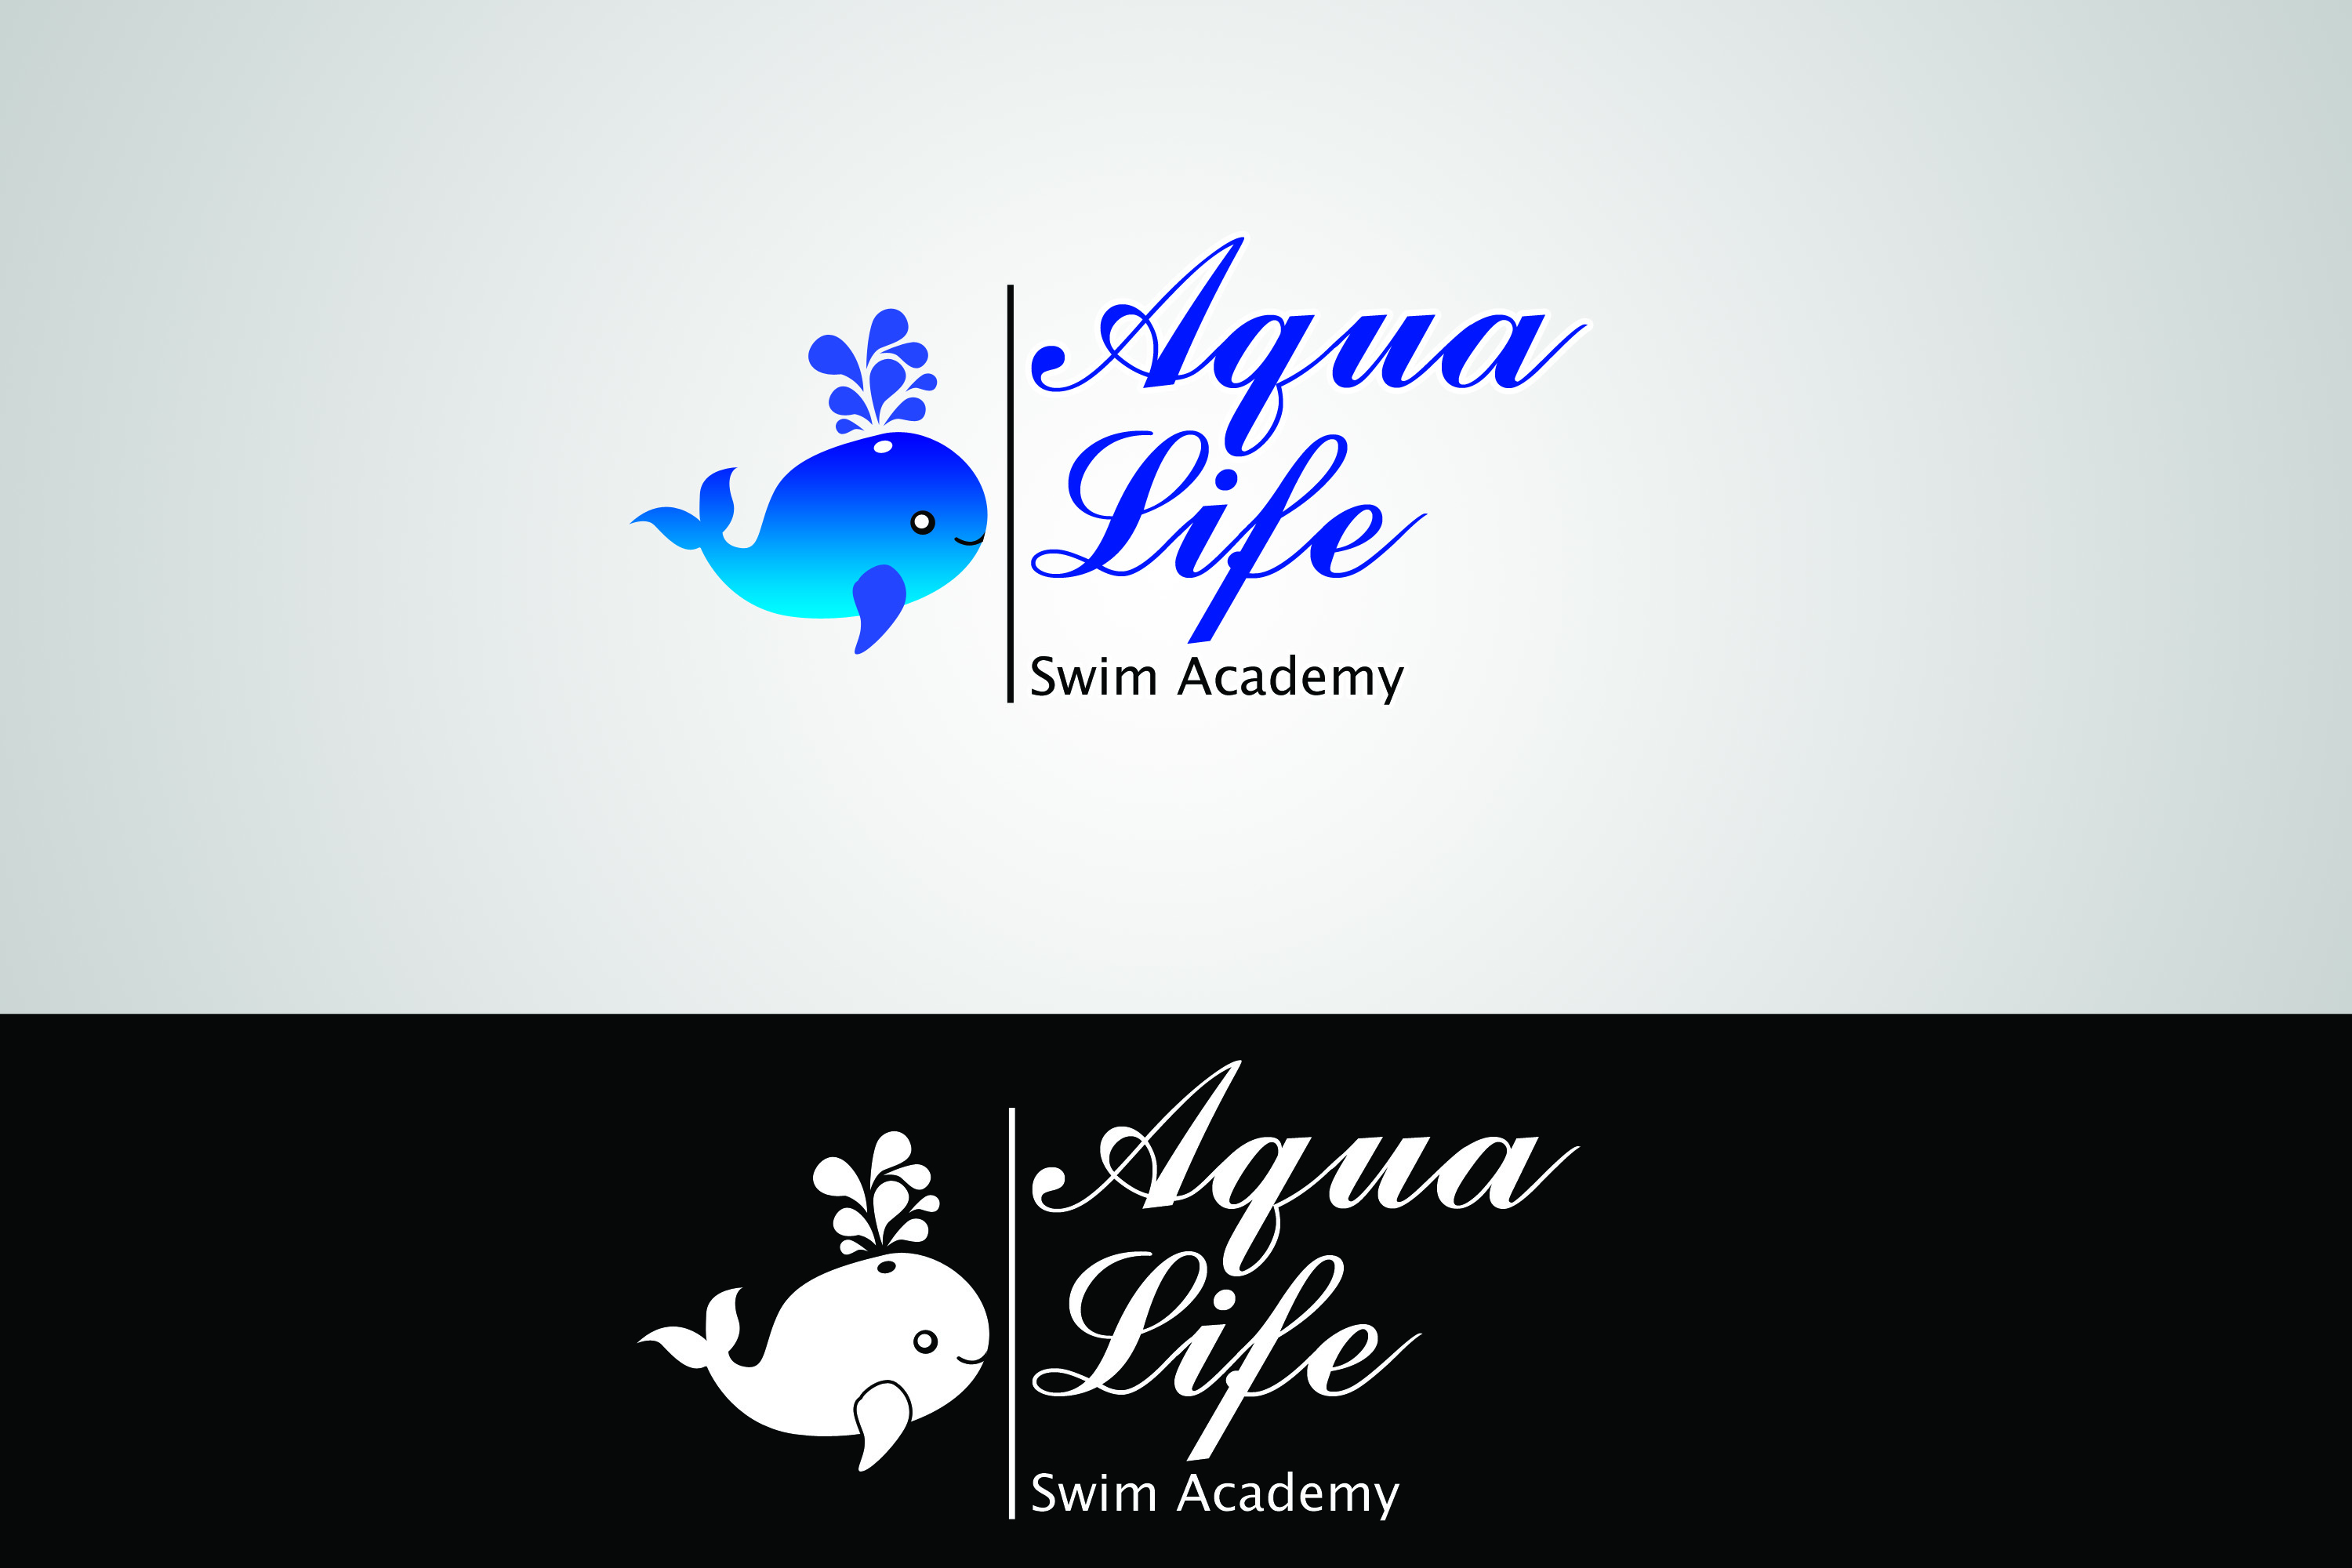 Logo Design by Private User - Entry No. 41 in the Logo Design Contest Artistic Logo Design Wanted for The Aqua Life Swim Academy.